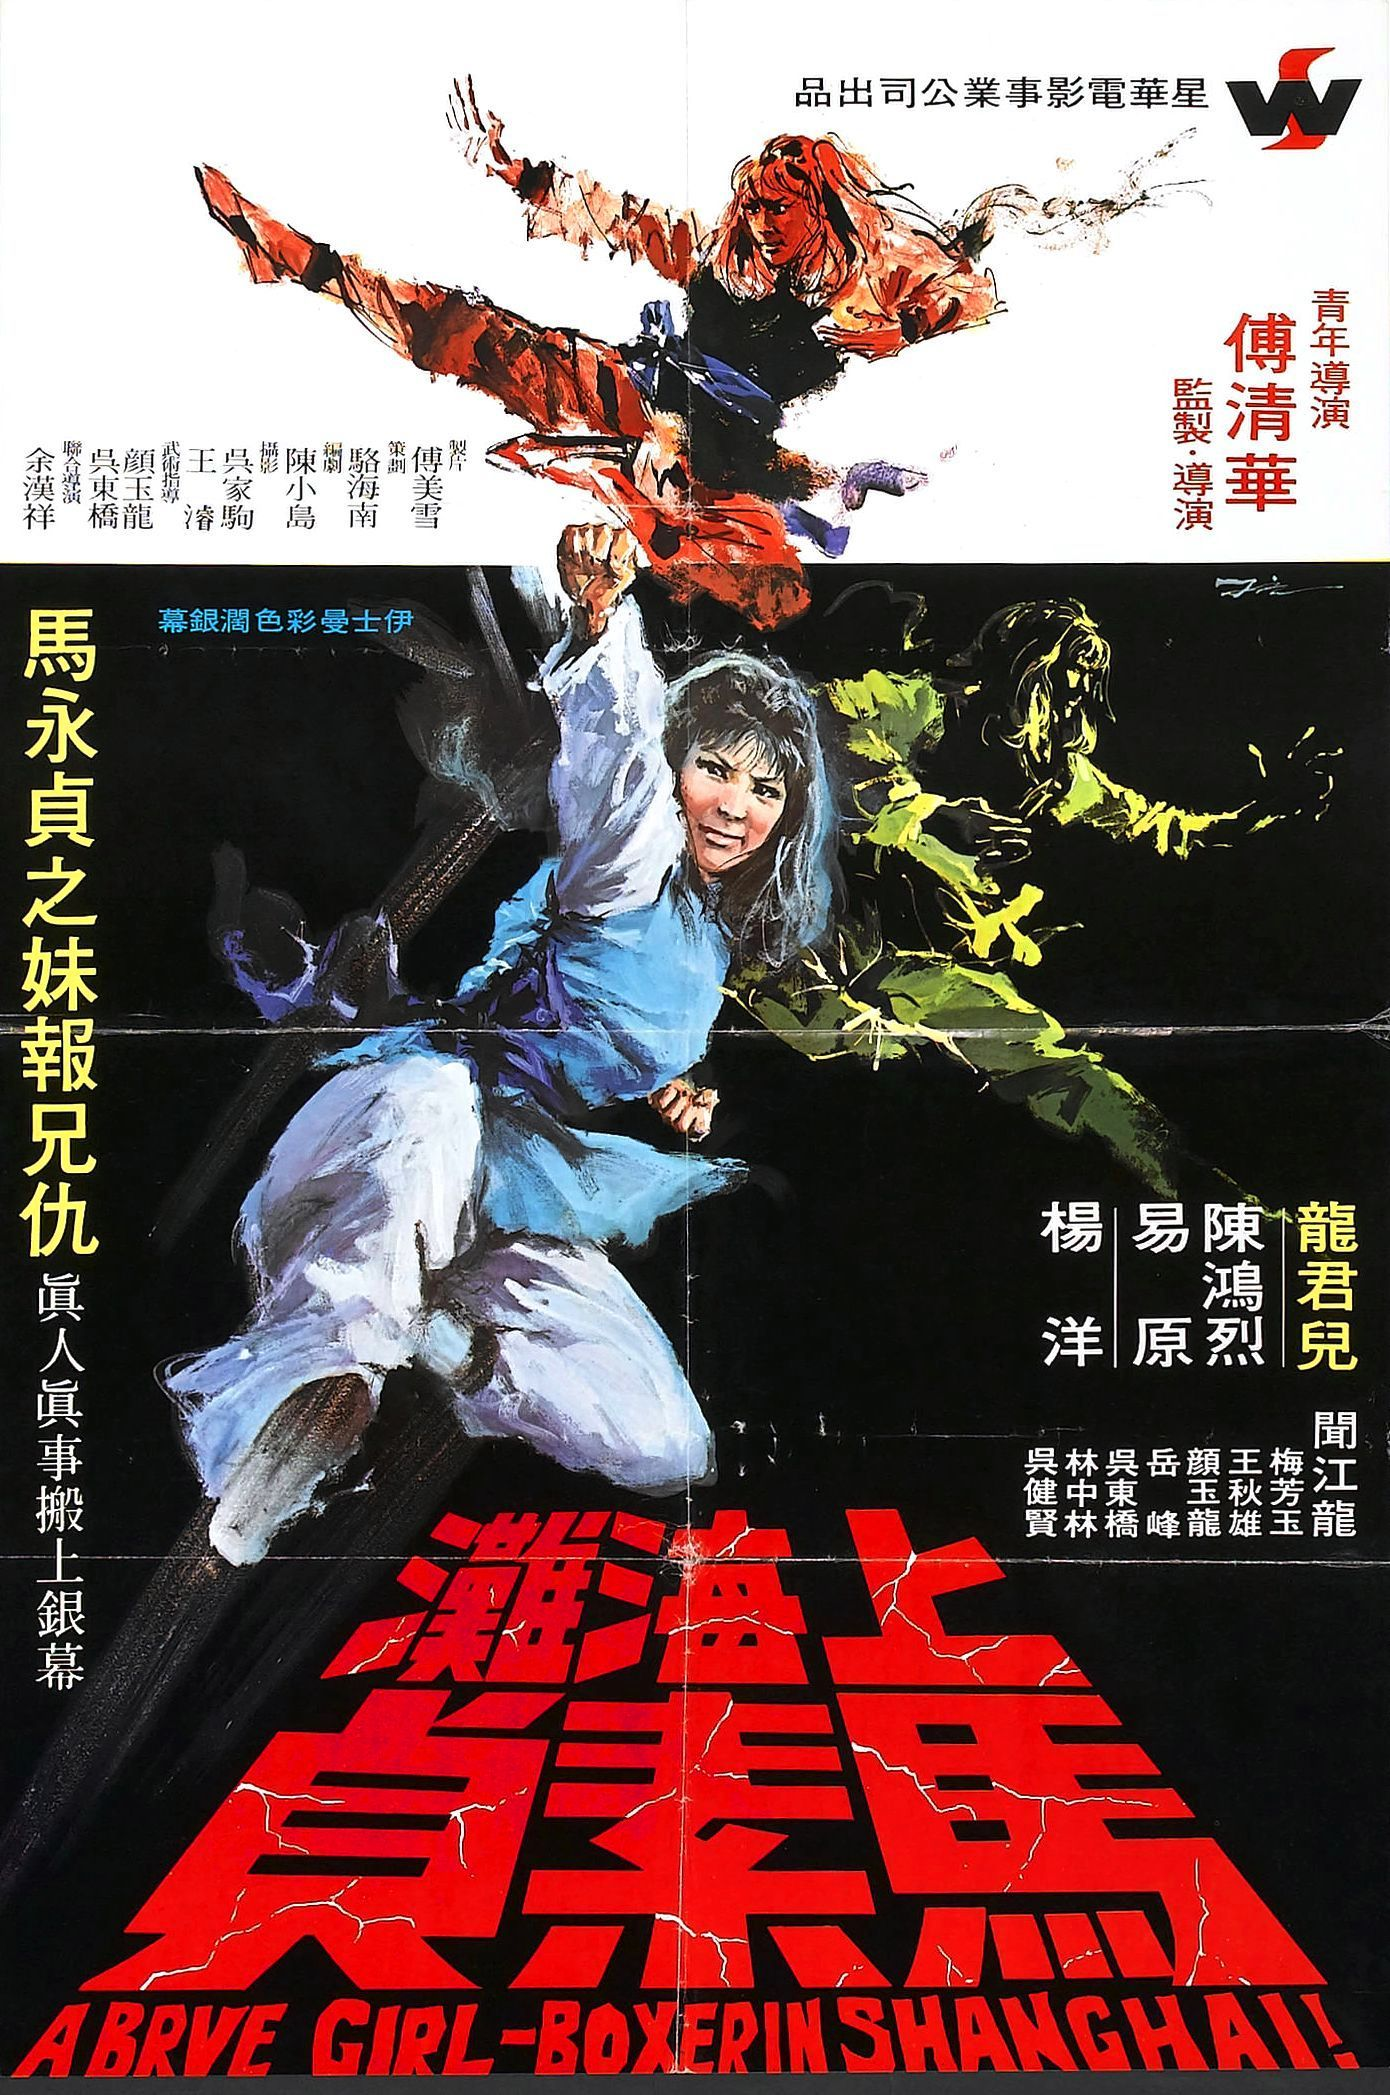 Brave Girl Boxer From Shanghai 1972 Old Film Posters Movie Posters Martial Arts Film